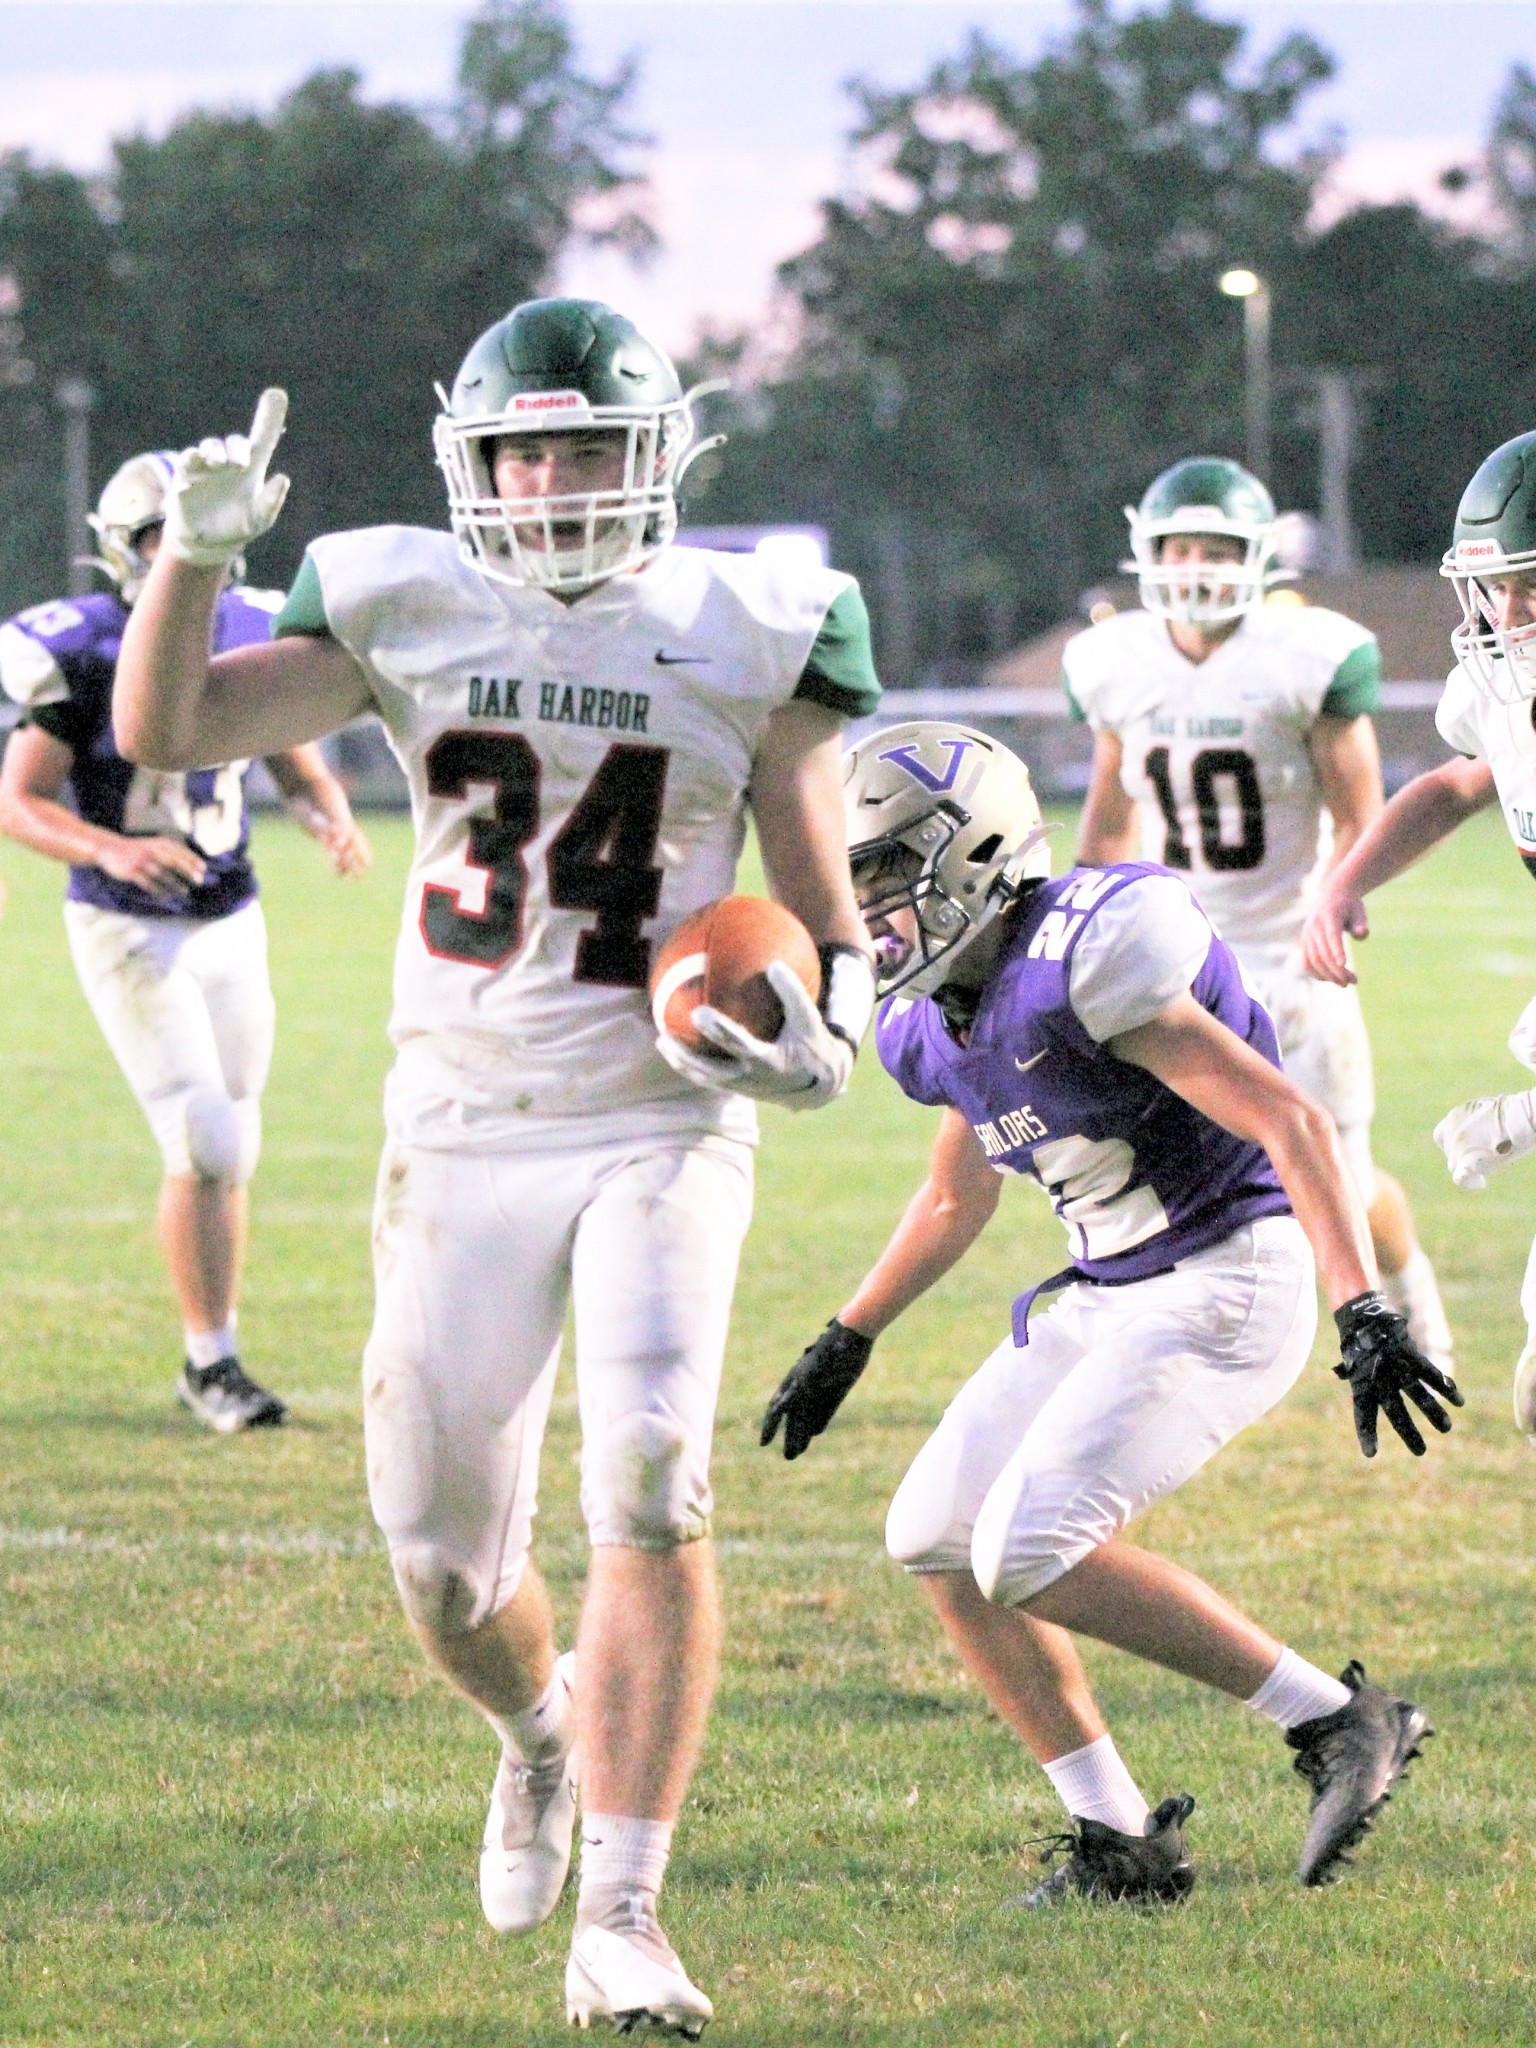 Oak Harbor senior running back Collin Fauver scores in the Rockets' 30-0 win over Sandusky Bay Conference foe Vermilion. (Photo by Laura Bolander)